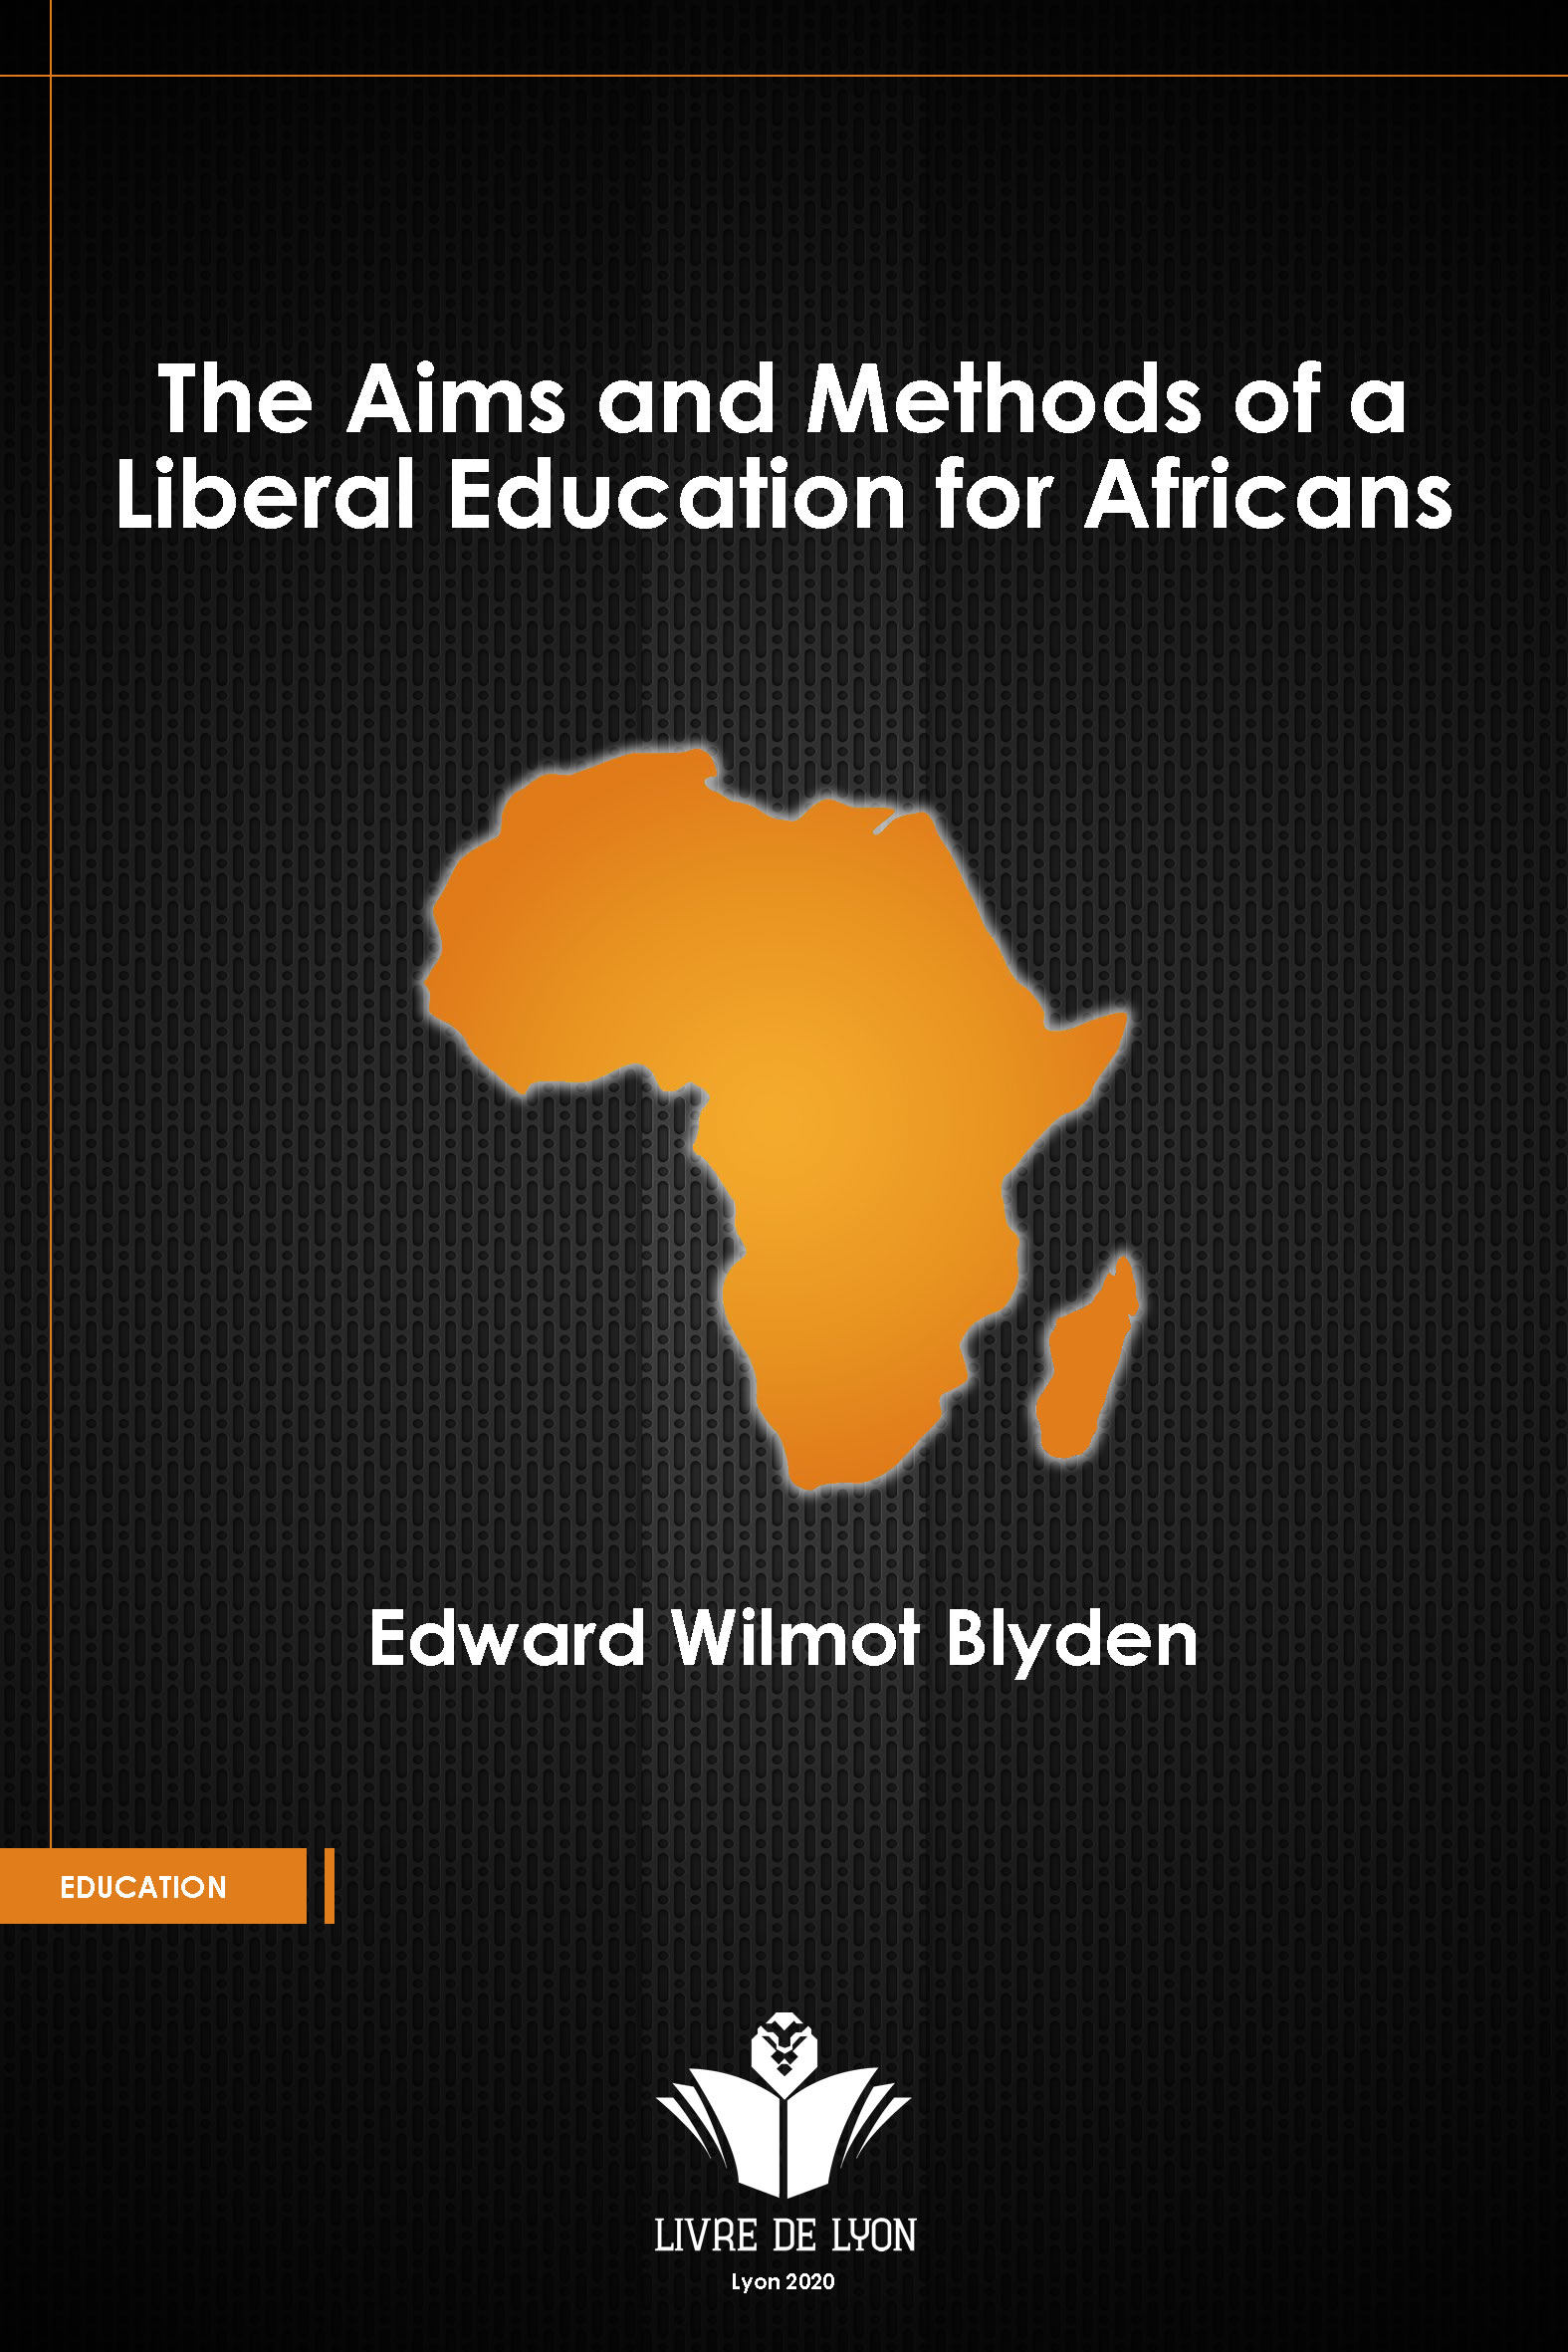 The Aims and Methods of Liberal Education for Africans